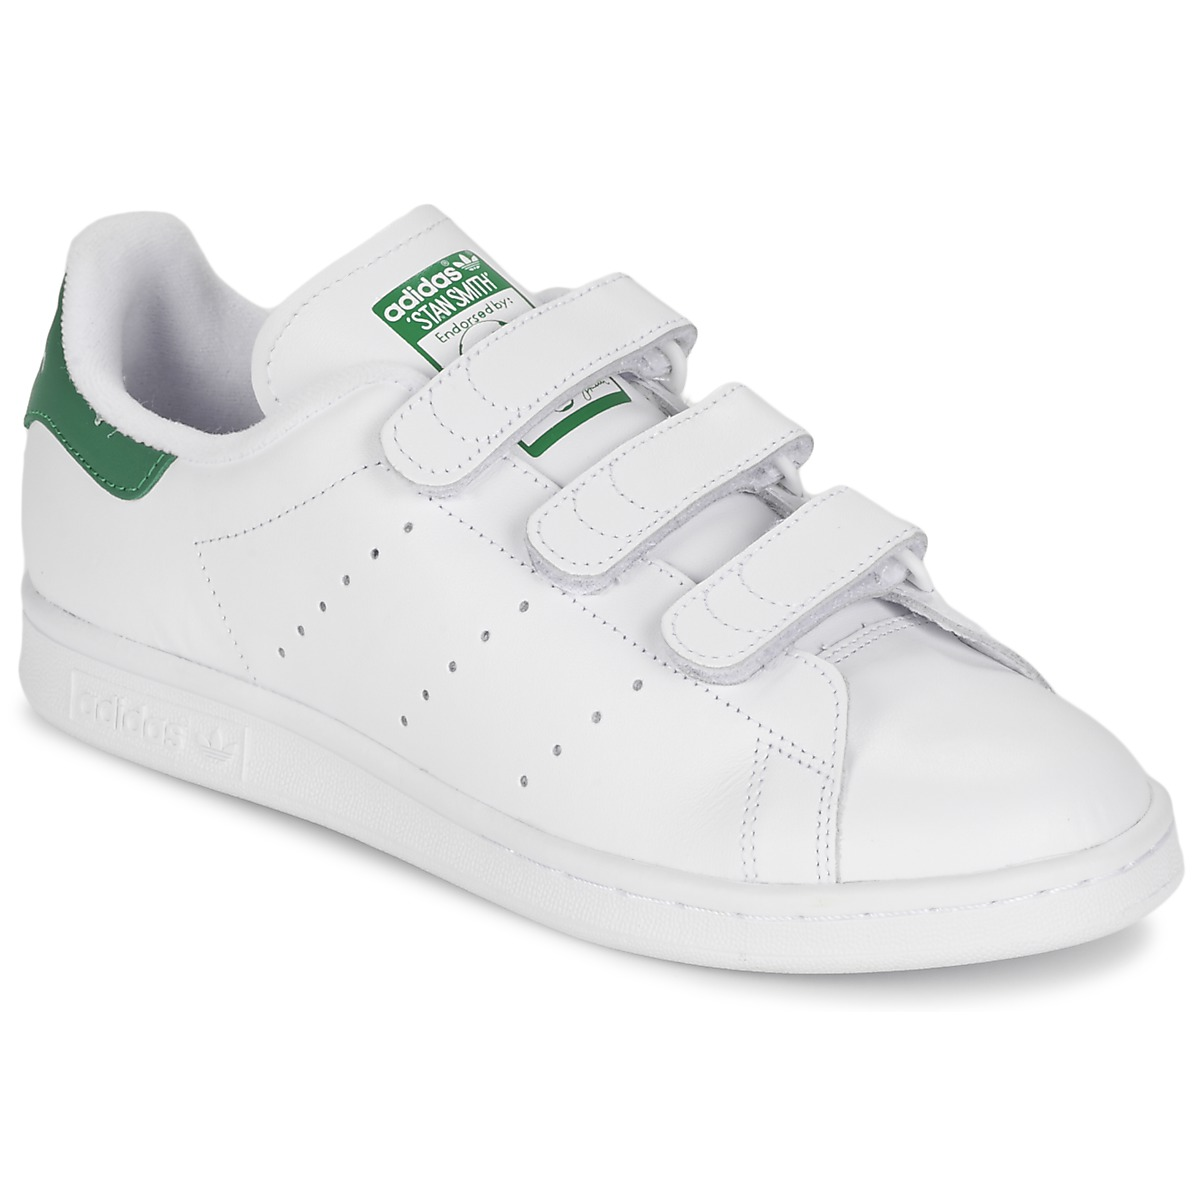 new product 62379 f7c00 adidas Originals Stan Smith